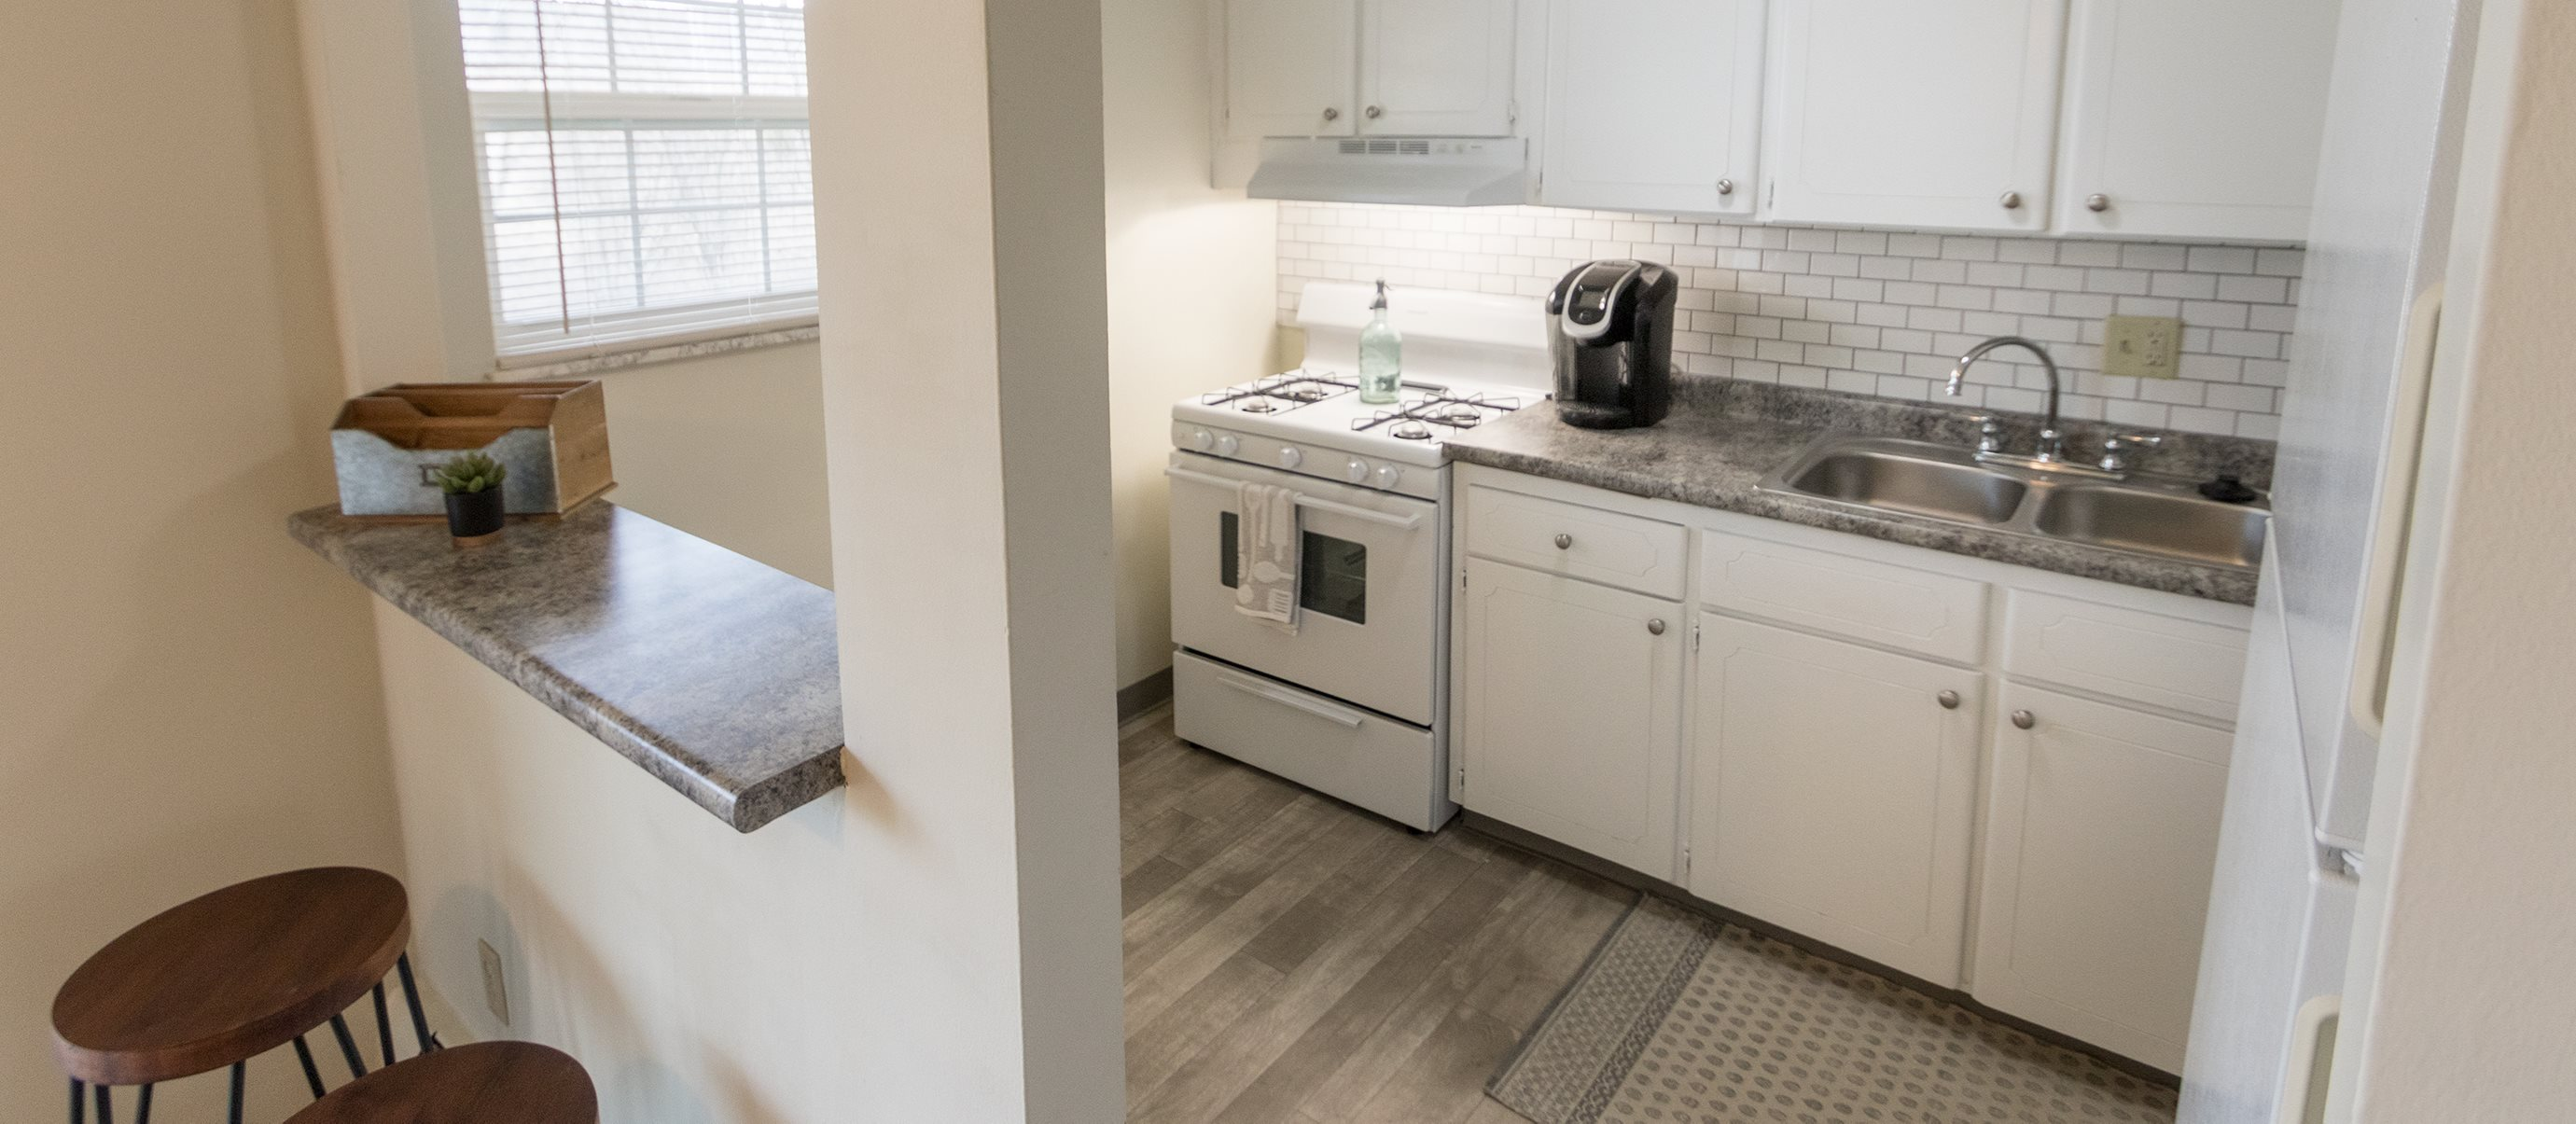 This is a photo of the kitchen and breakfast bar of the 1 bedroom, 631 square foot model apartment at Lake of the Woods Apartments in Cincinnati, OH.